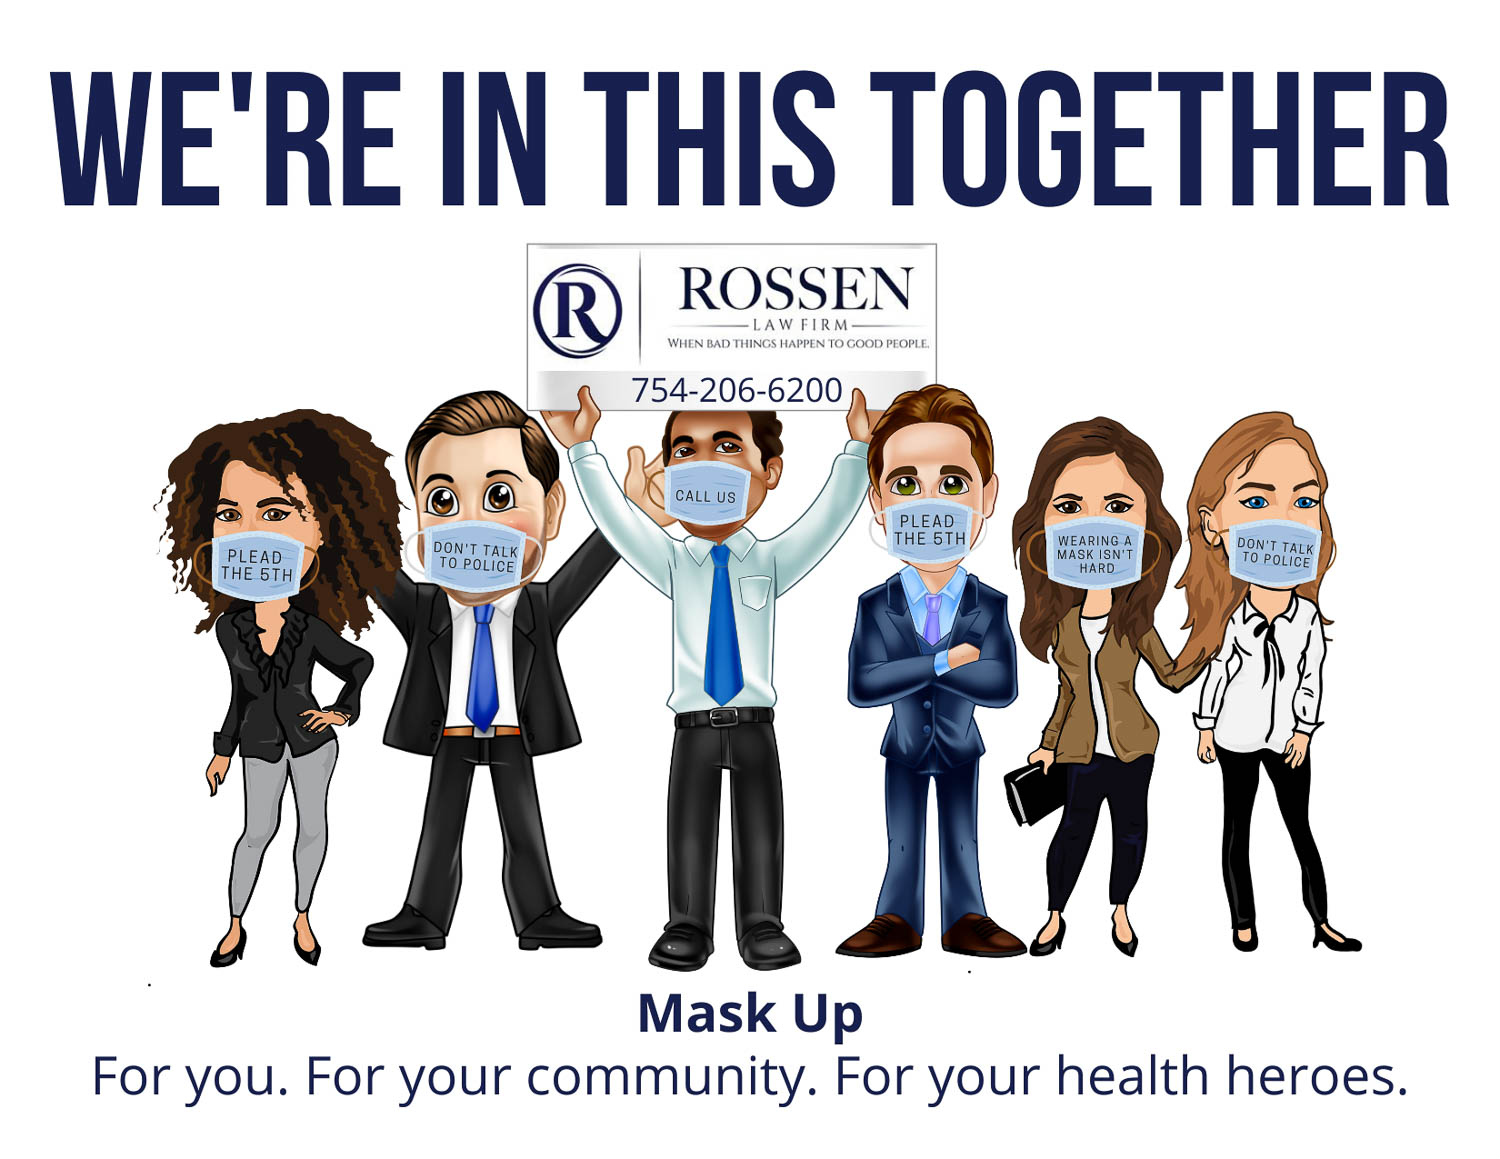 Rossen Law Firm's Criminal Defense team is wearing masks and holding a sign that says